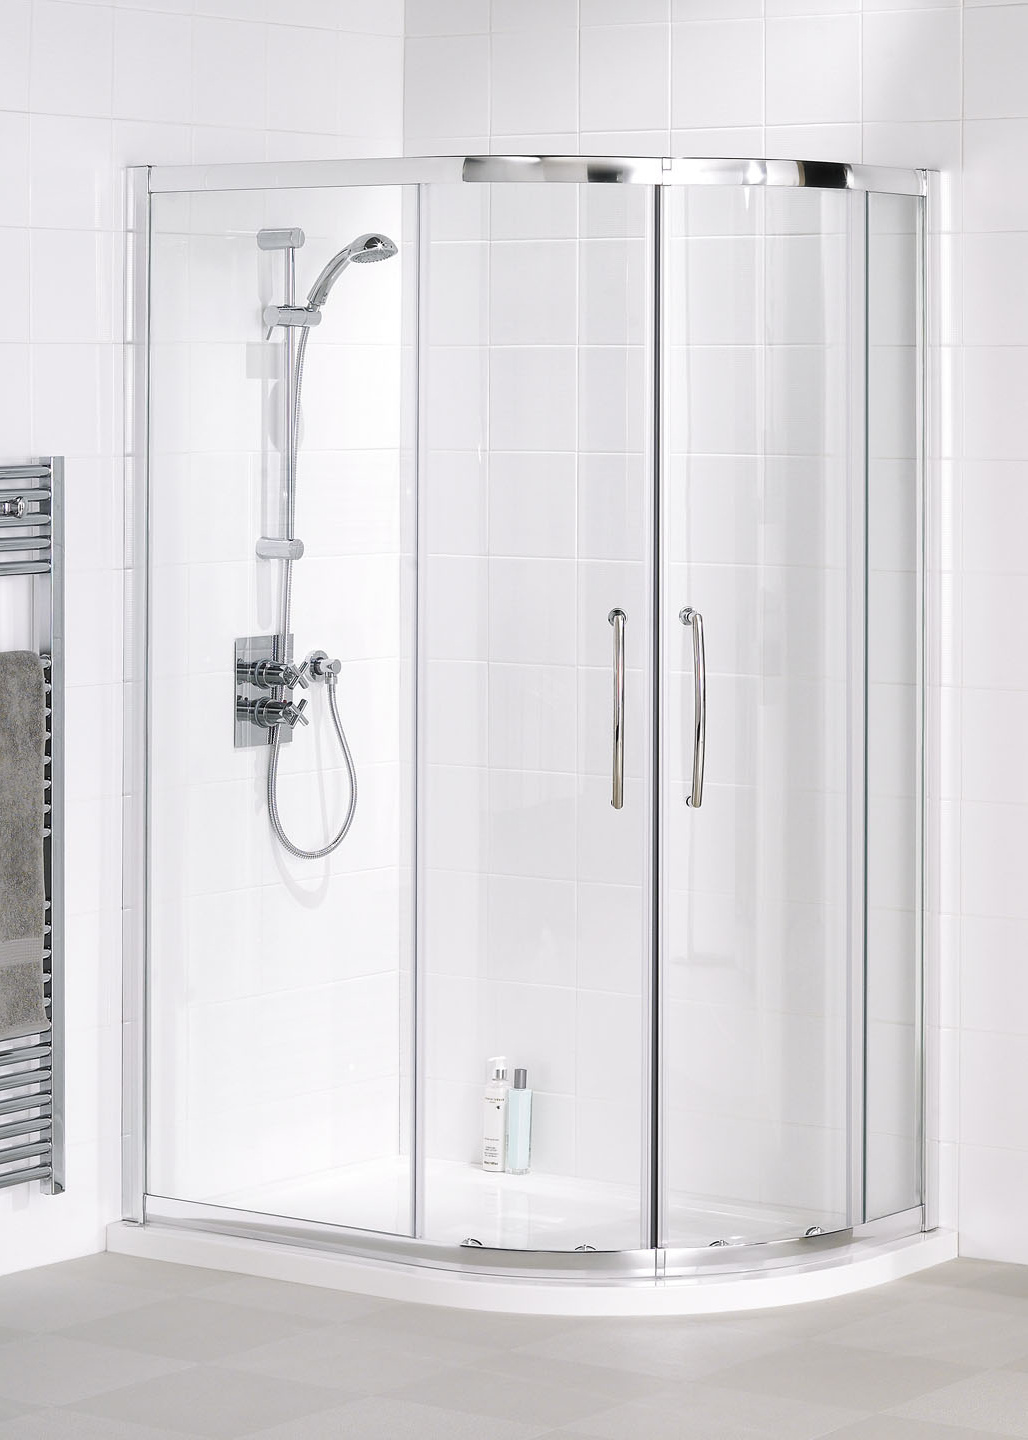 Shower Enclosures - Lakes Showering Spaces